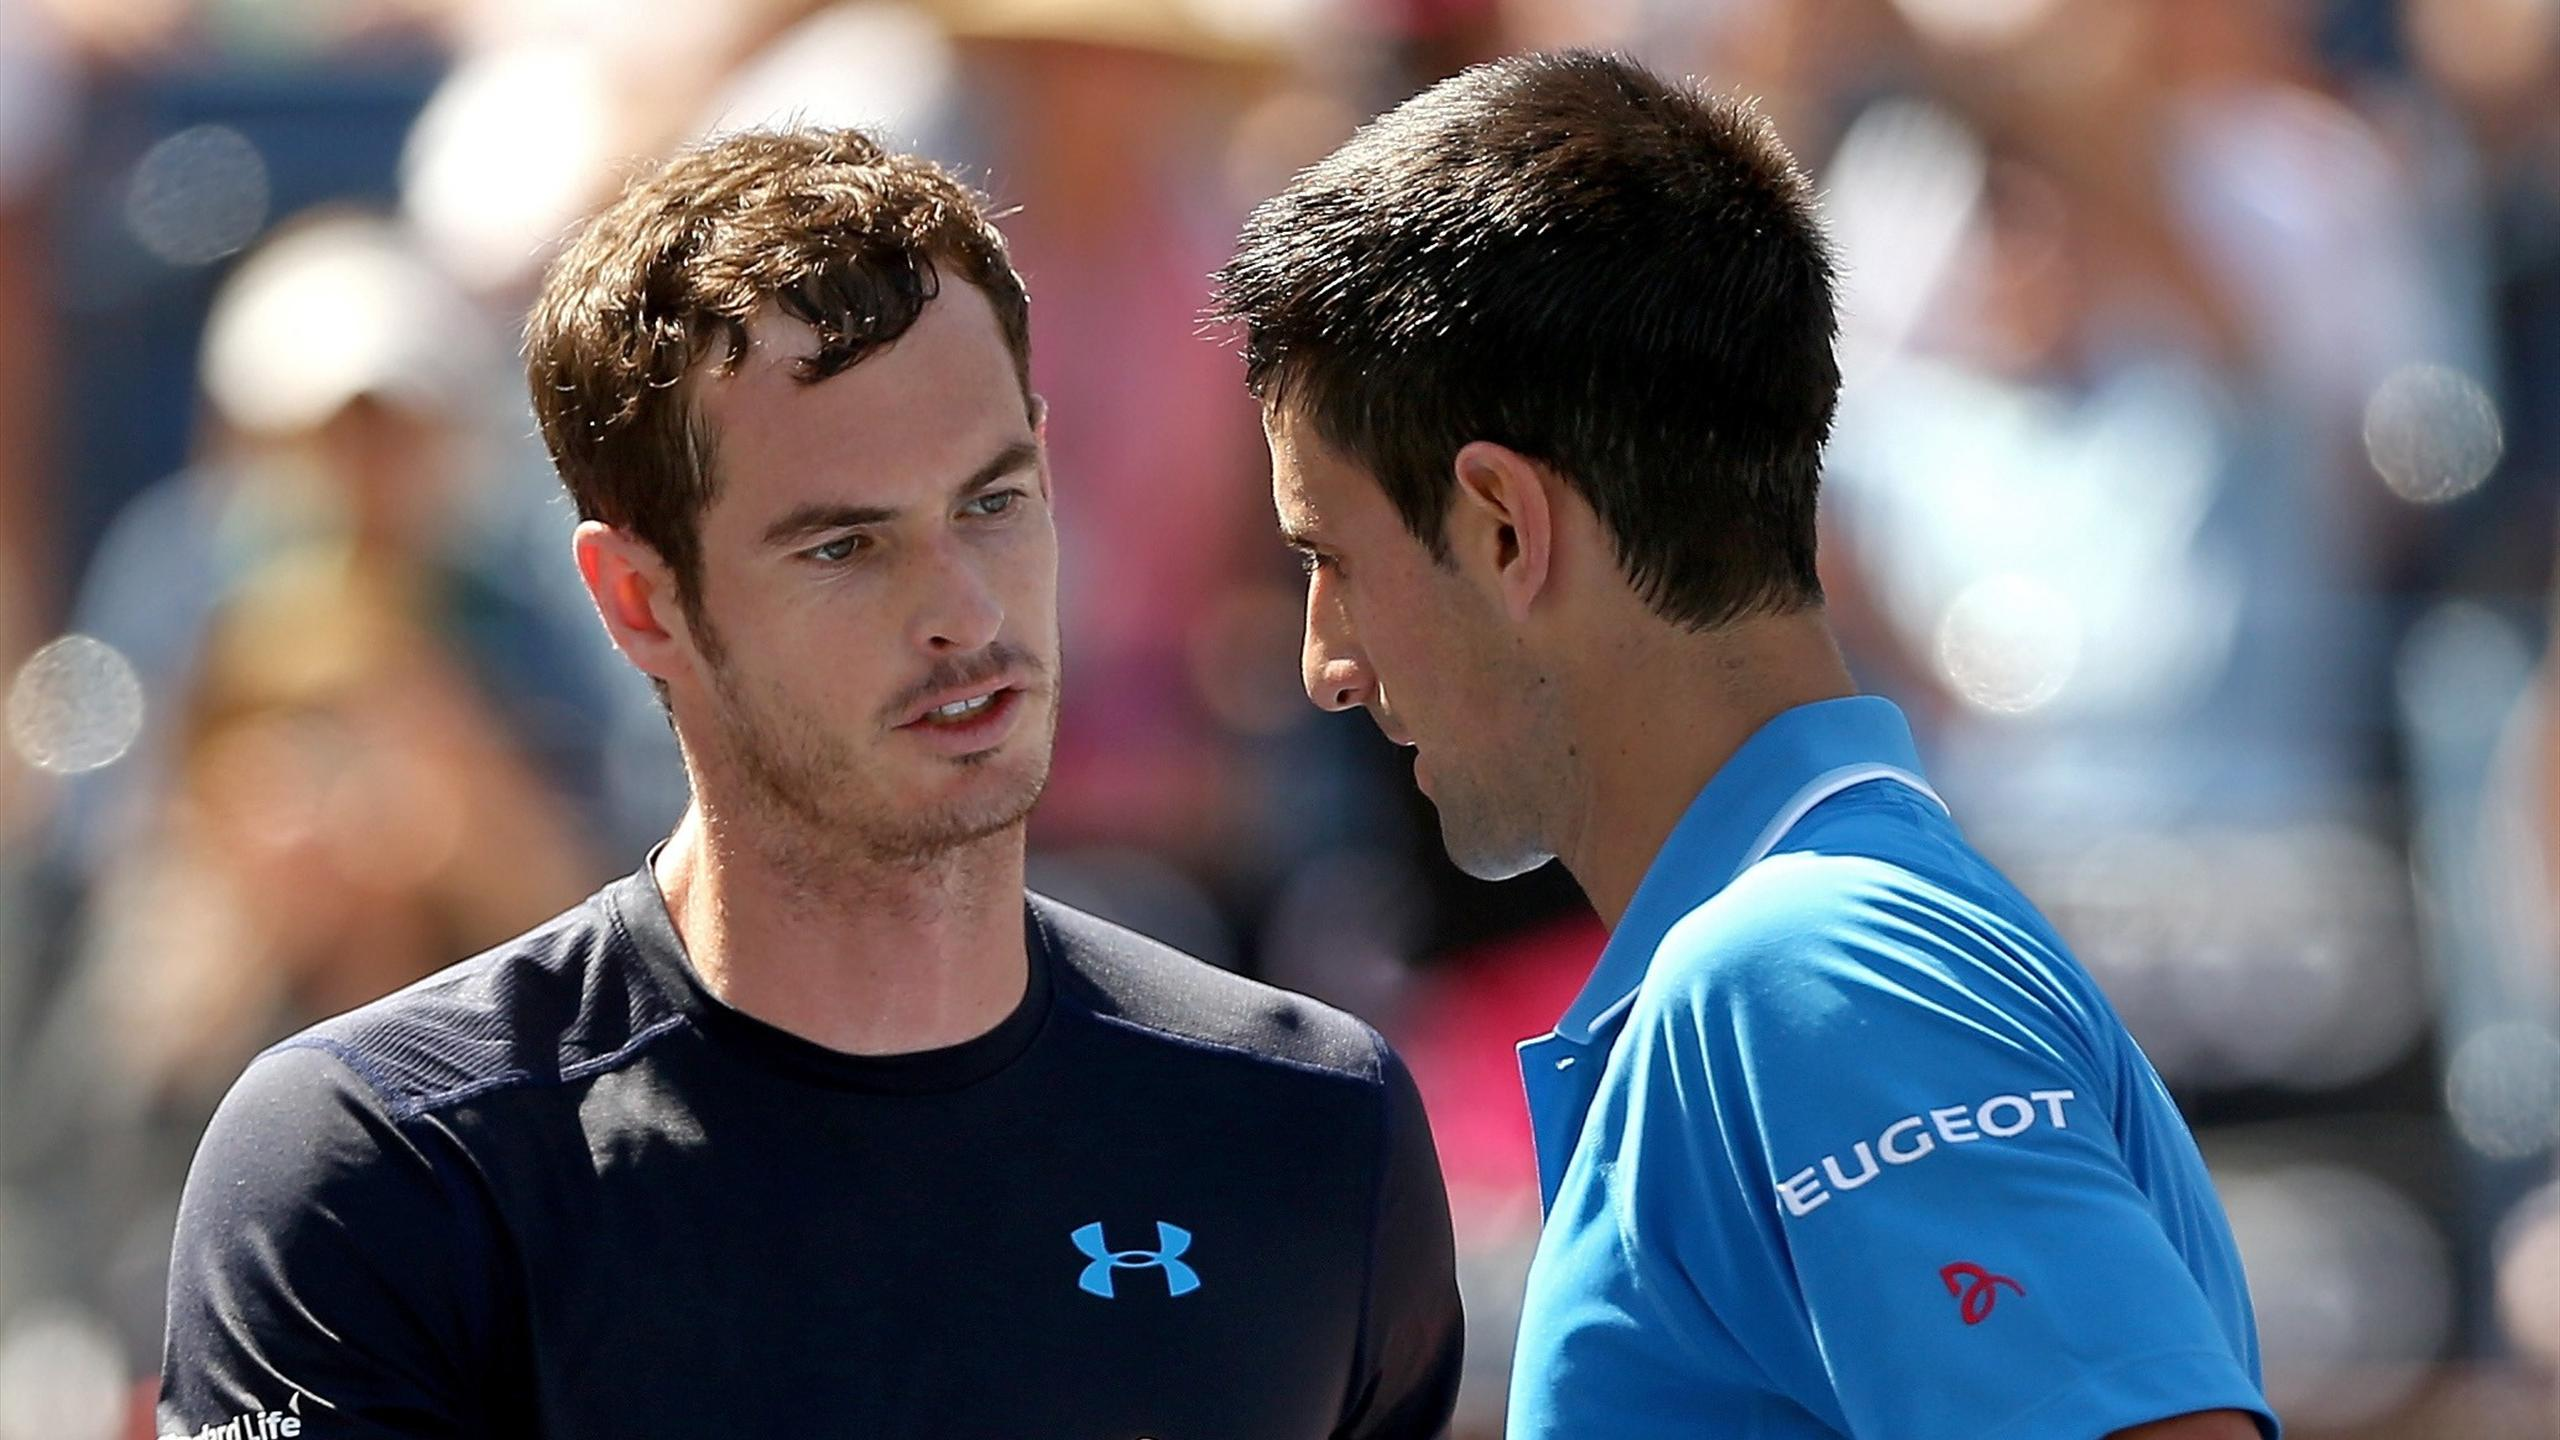 Andy Murray of Great Britain congratulates Novak Djokovic of Serbia